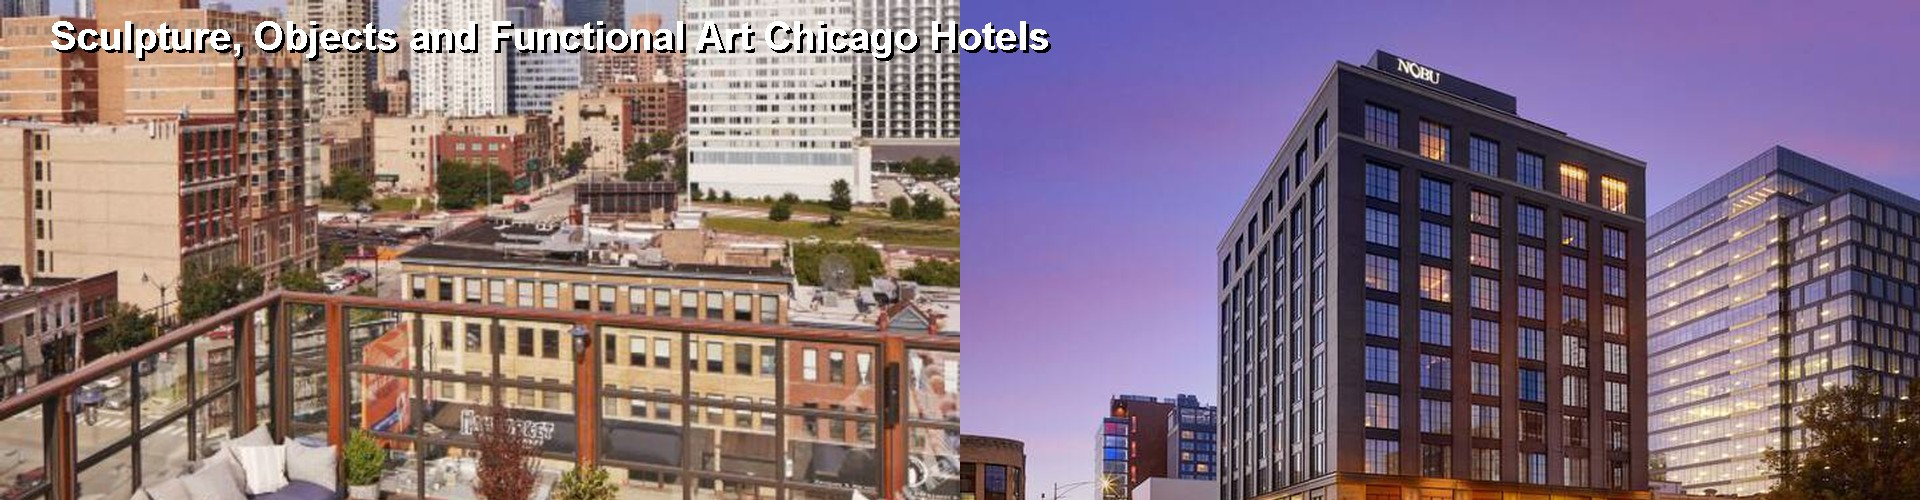 5 Best Hotels near Sculpture, Objects and Functional Art Chicago